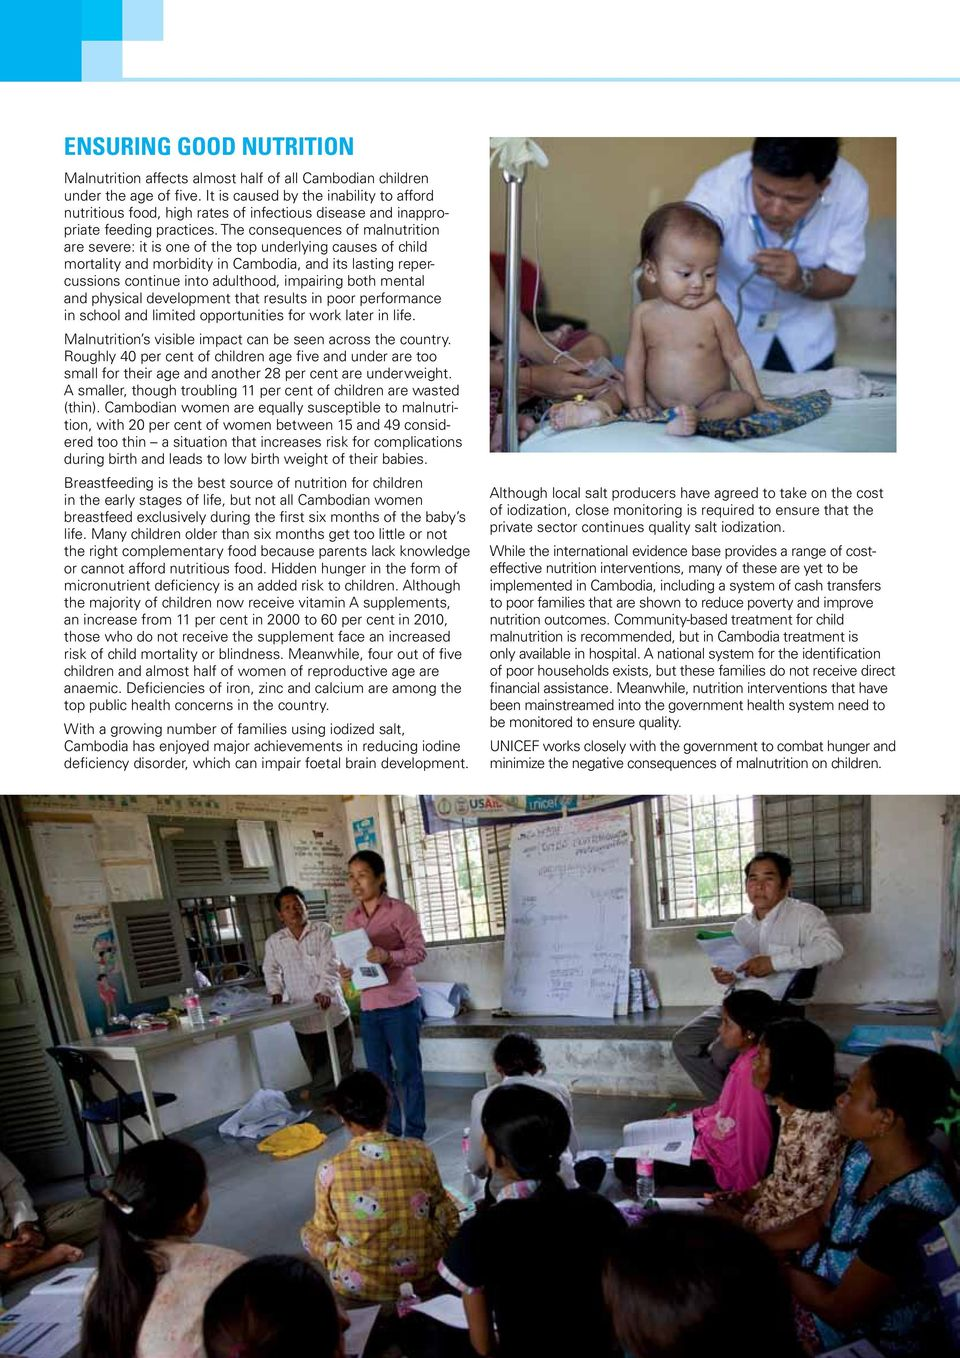 The consequences of malnutrition are severe: it is one of the top underlying causes of child mortality and morbidity in Cambodia, and its lasting repercussions continue into adulthood, impairing both